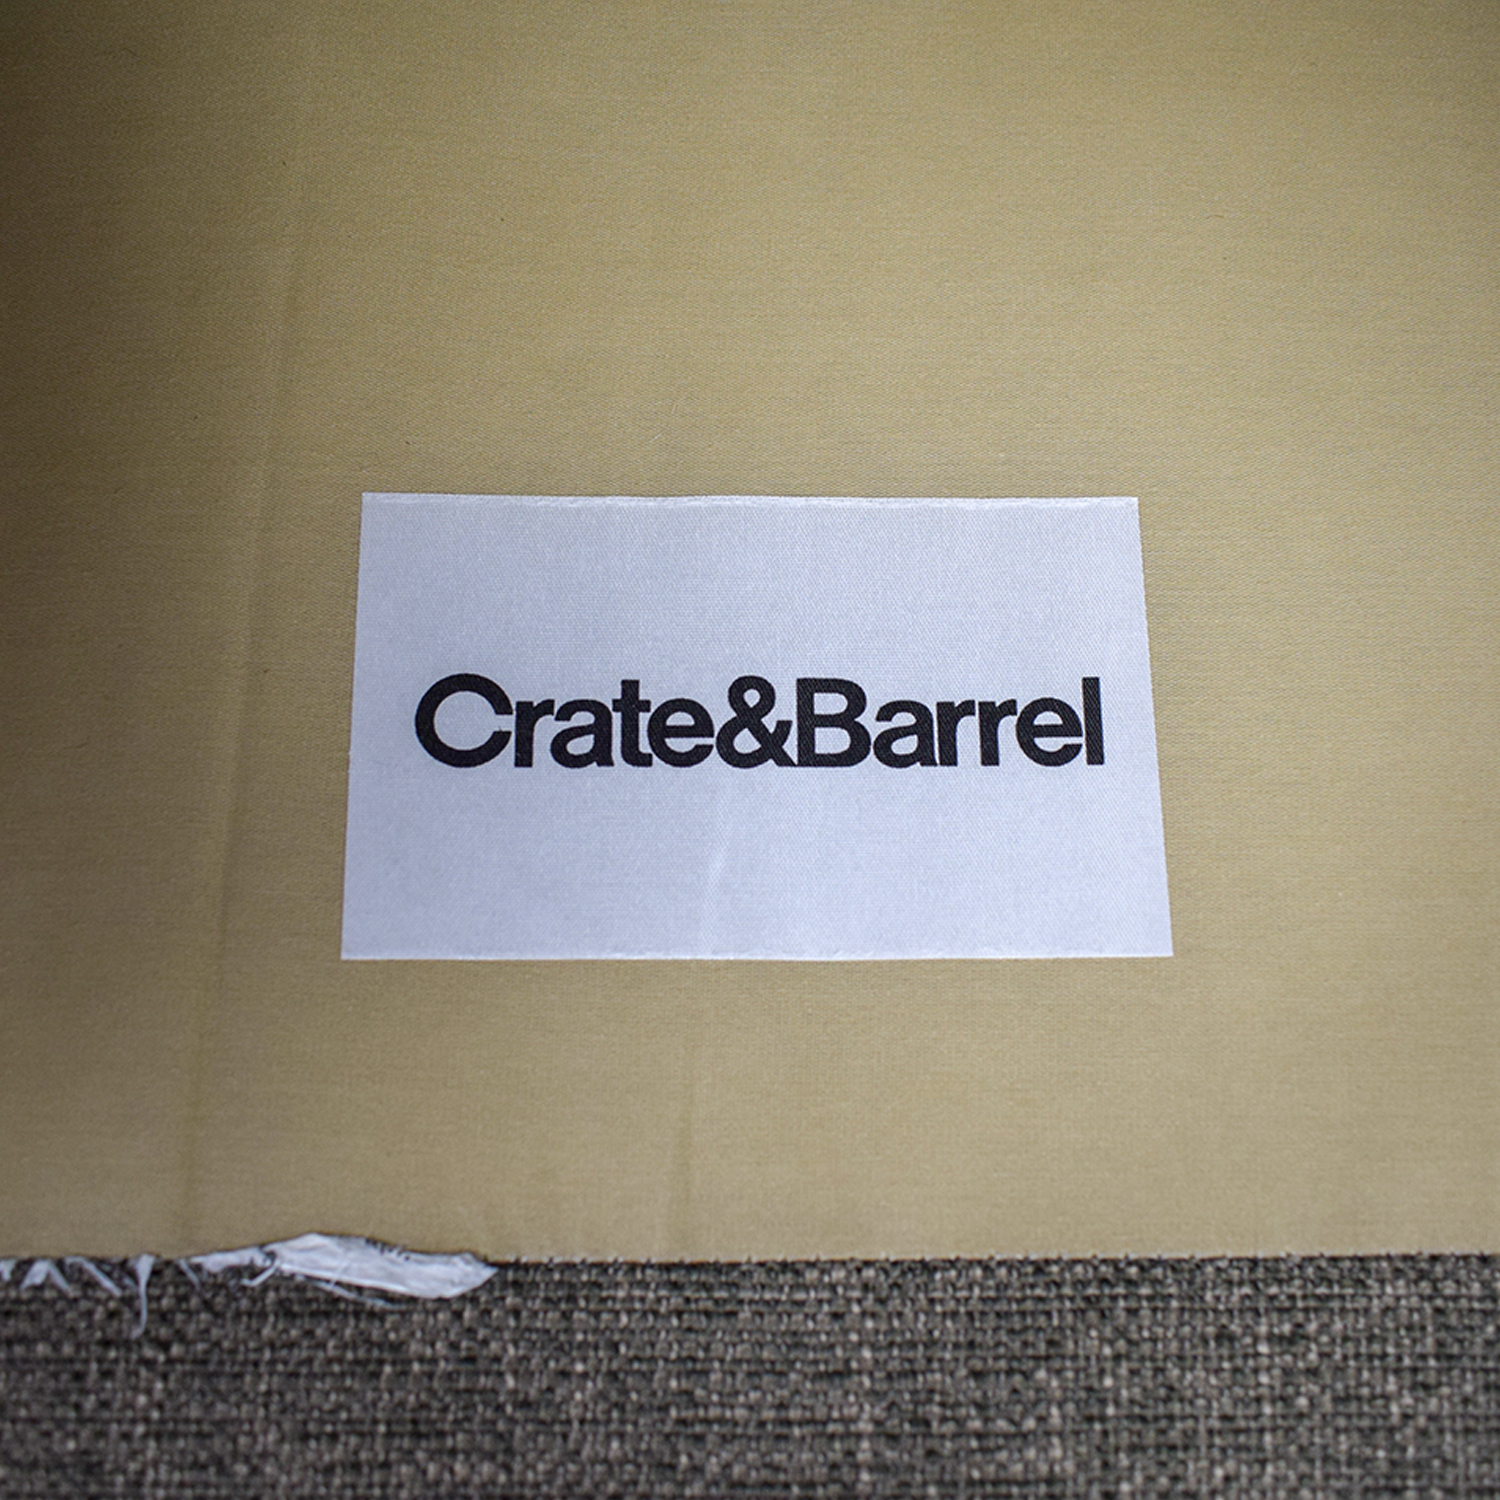 "Crate & Barrel Crate & Barrel Axis II 40"" Grey Chair second hand"